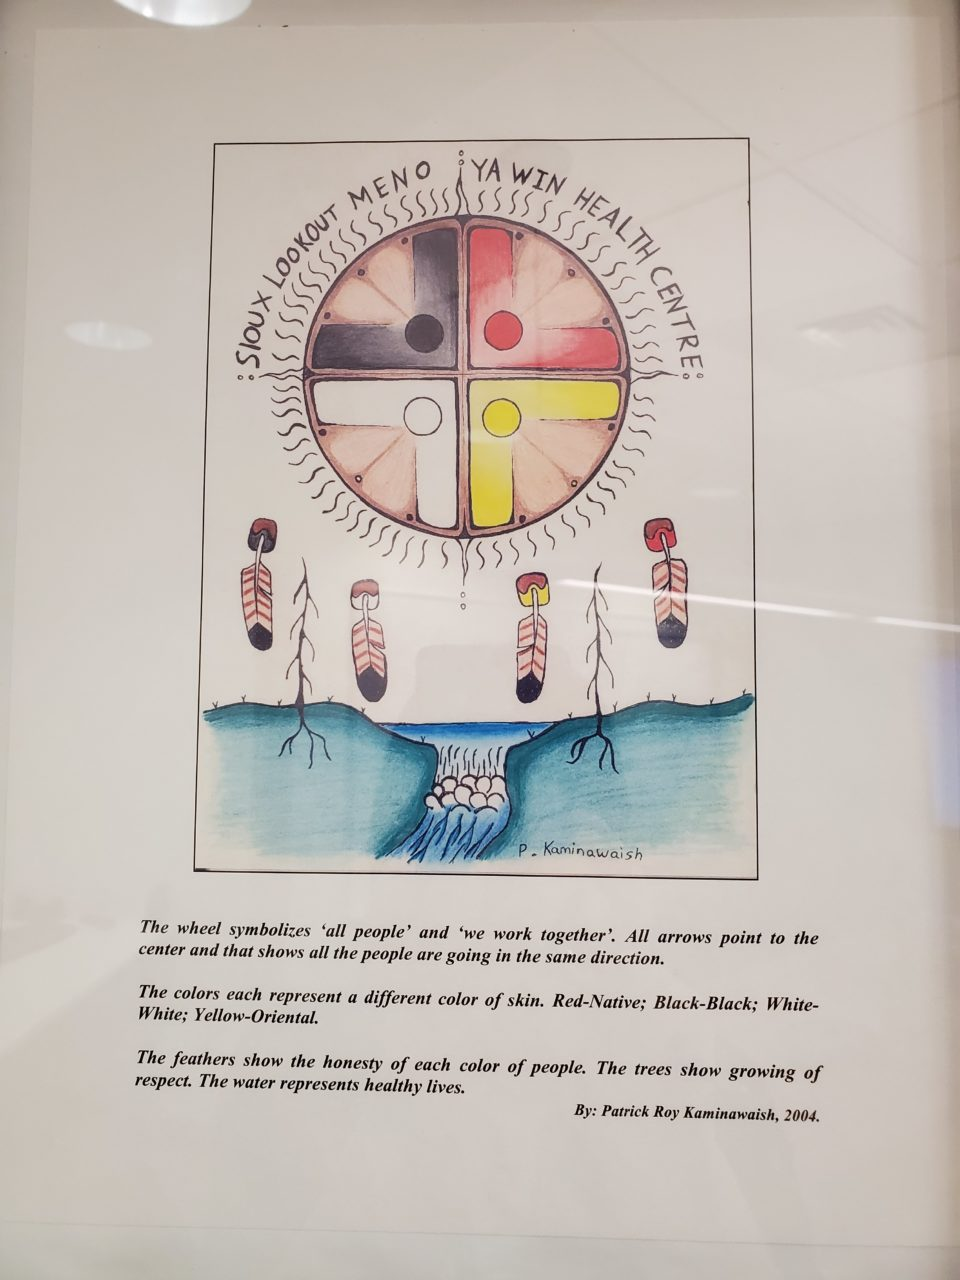 Original drawing and entry of the Sioux Lookout Meno Ya Win Health Centre logo.